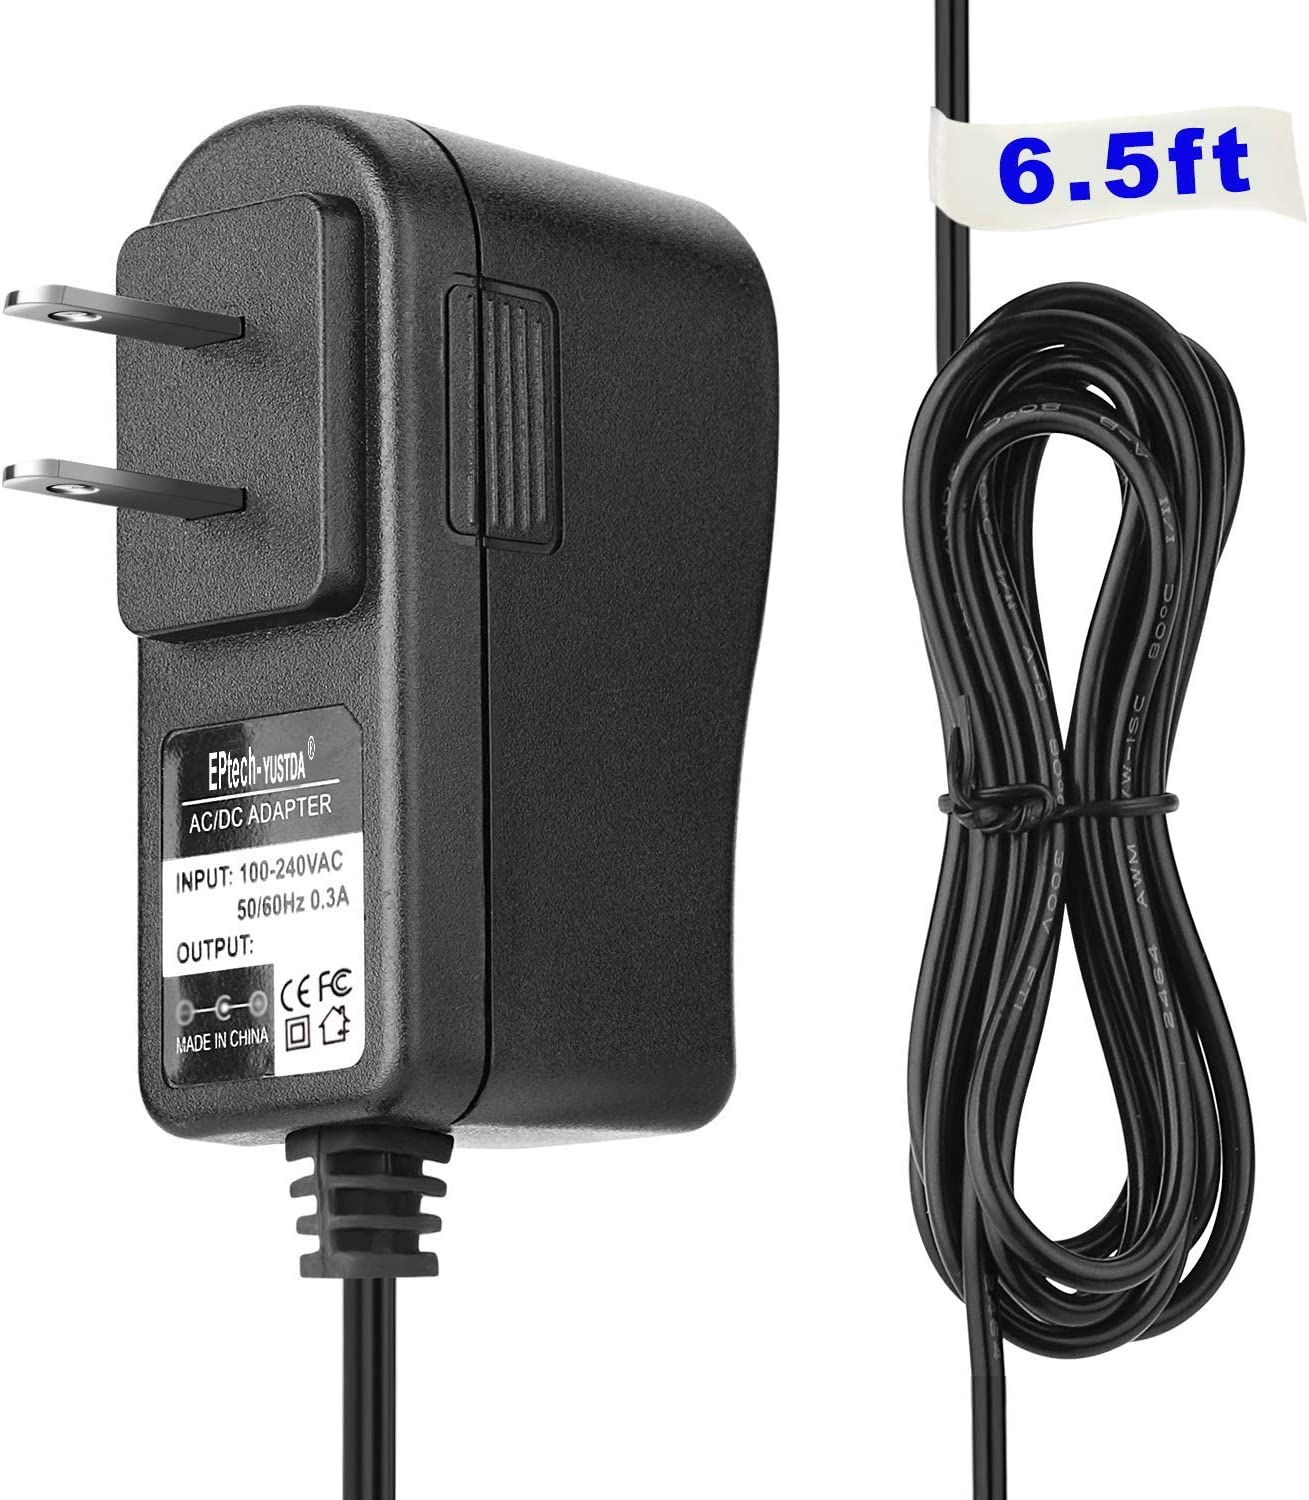 AC Adapter Power Supply for HP Procurve 1410-16G J9560A Unmanaged 16-Port Gigabit Ethernet Switch